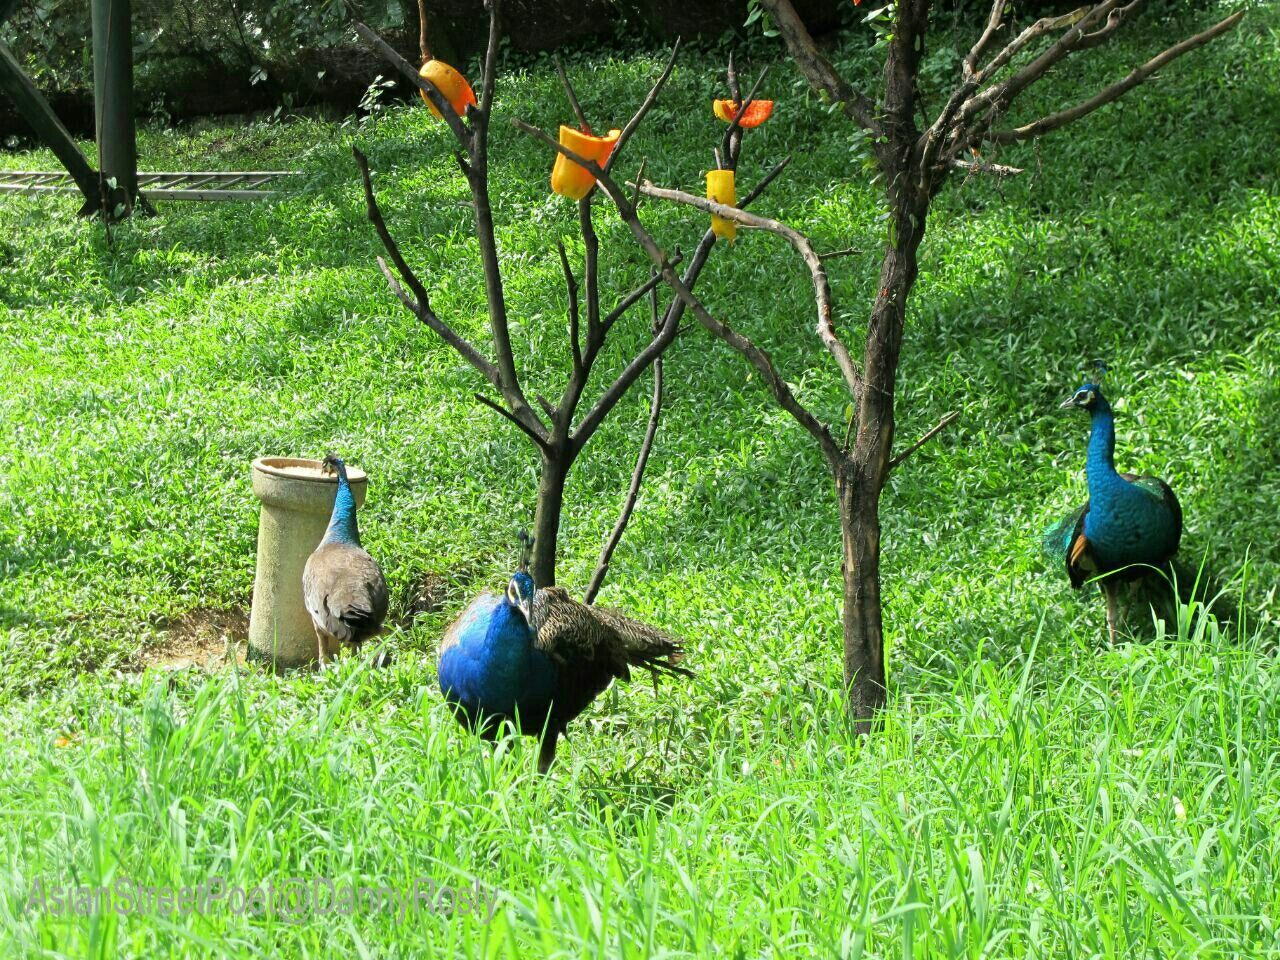 bird, animal themes, grass, green color, peacock, animals in the wild, nature, field, animal wildlife, outdoors, growth, day, no people, beauty in nature, plant, tree, peacock feather, perching